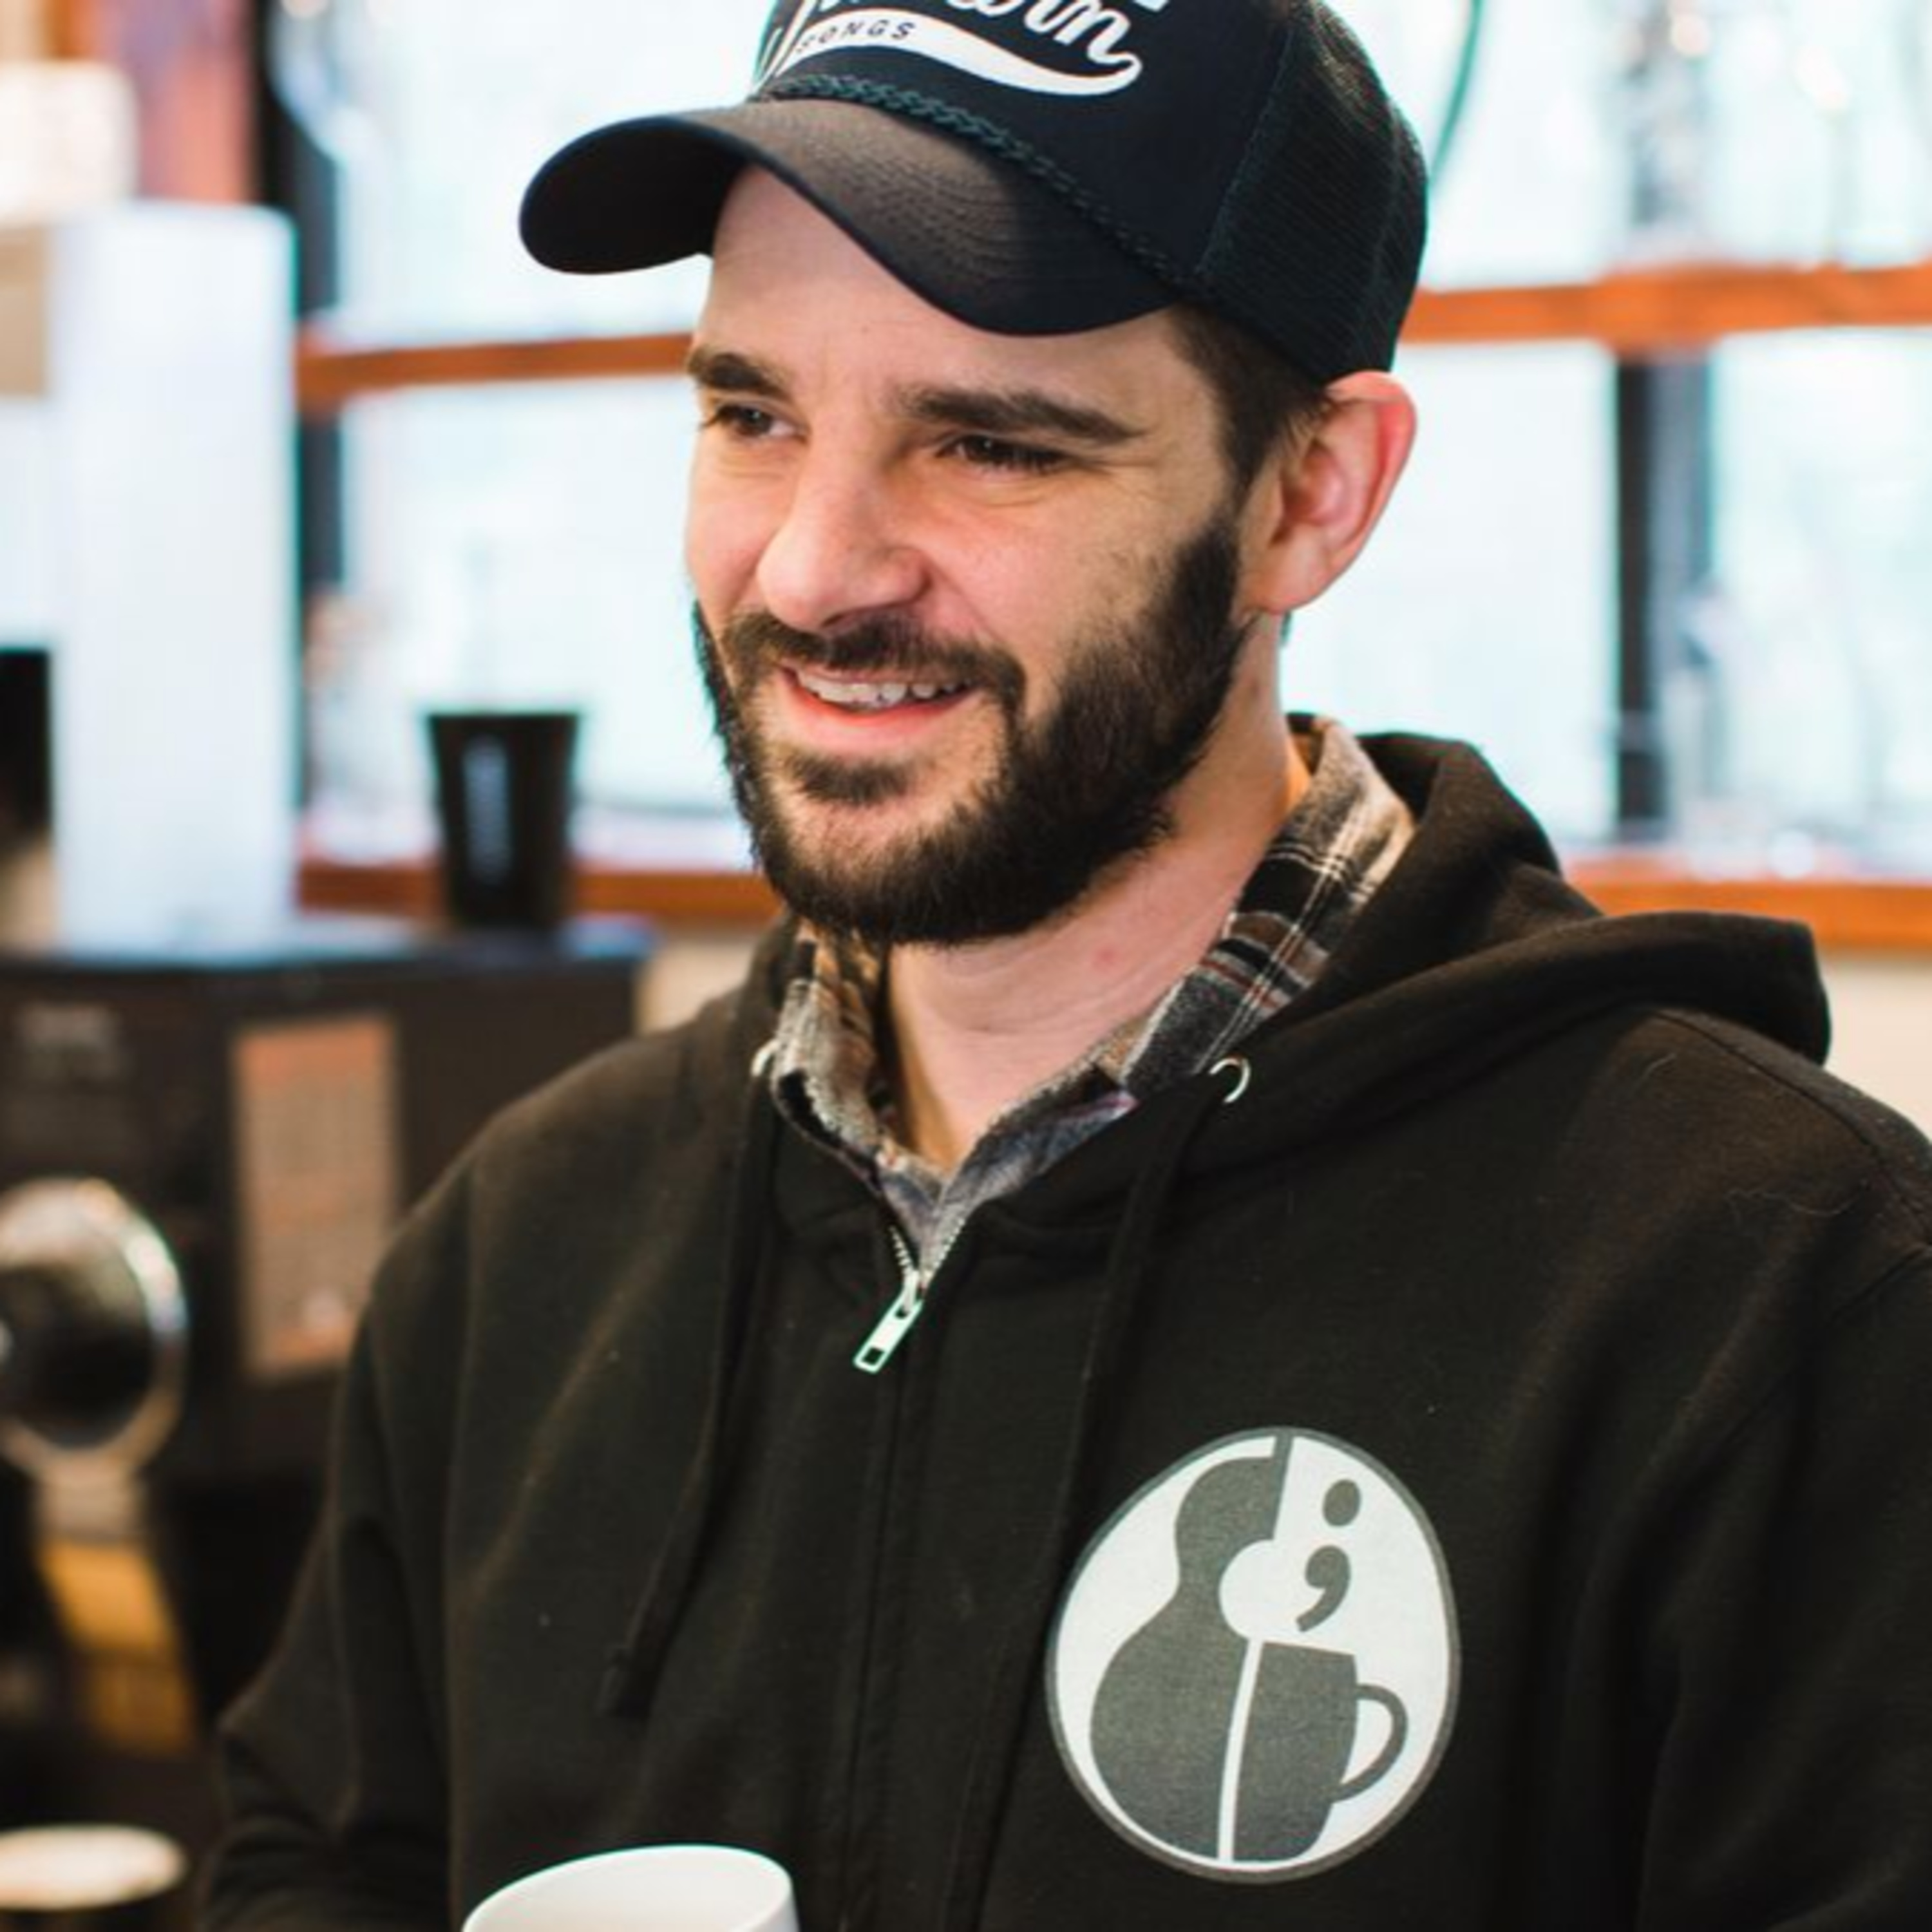 """Waller's Coffee: """"Run a business and care about people around you. Those belong together."""""""